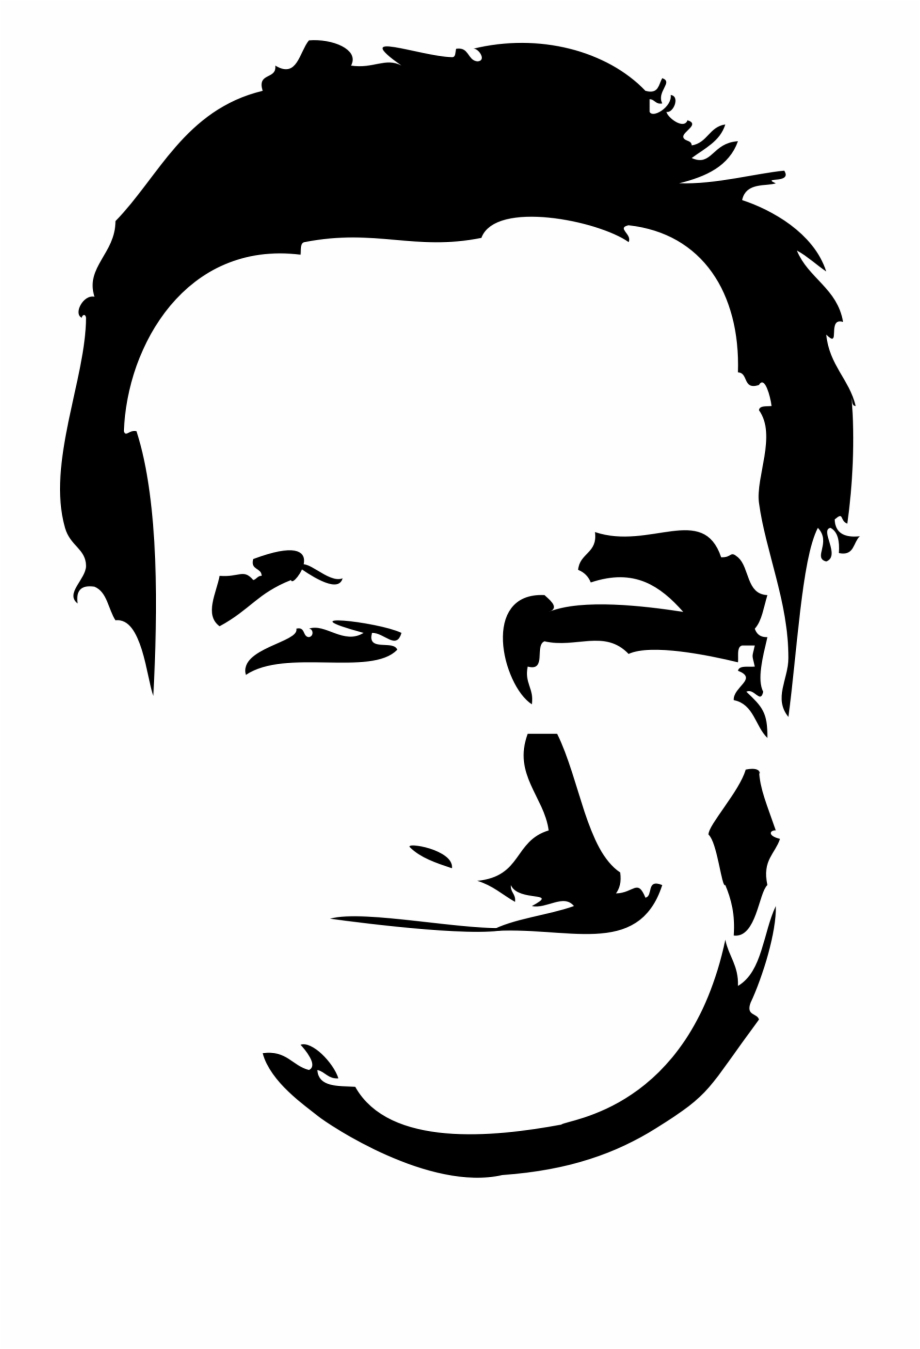 Vector Download Silhouette Of Face At Getdrawings.